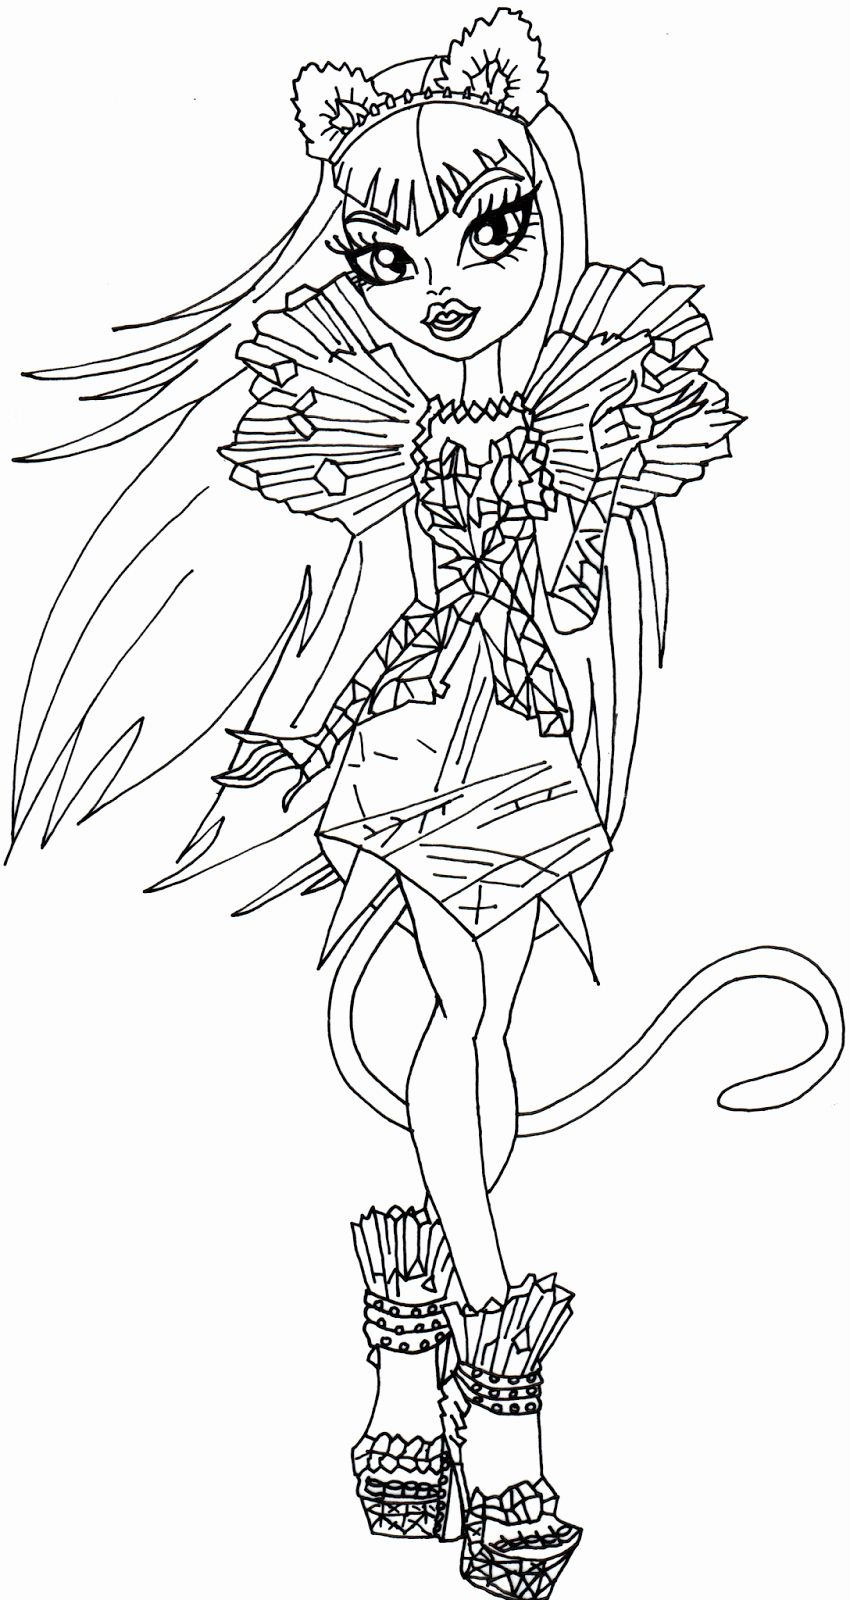 Monster High Coloring Pages Printable Luxury Free Printable Monster High Coloring Pages Monster High Coloring Pages Monster Coloring Pages High Coloring Pages